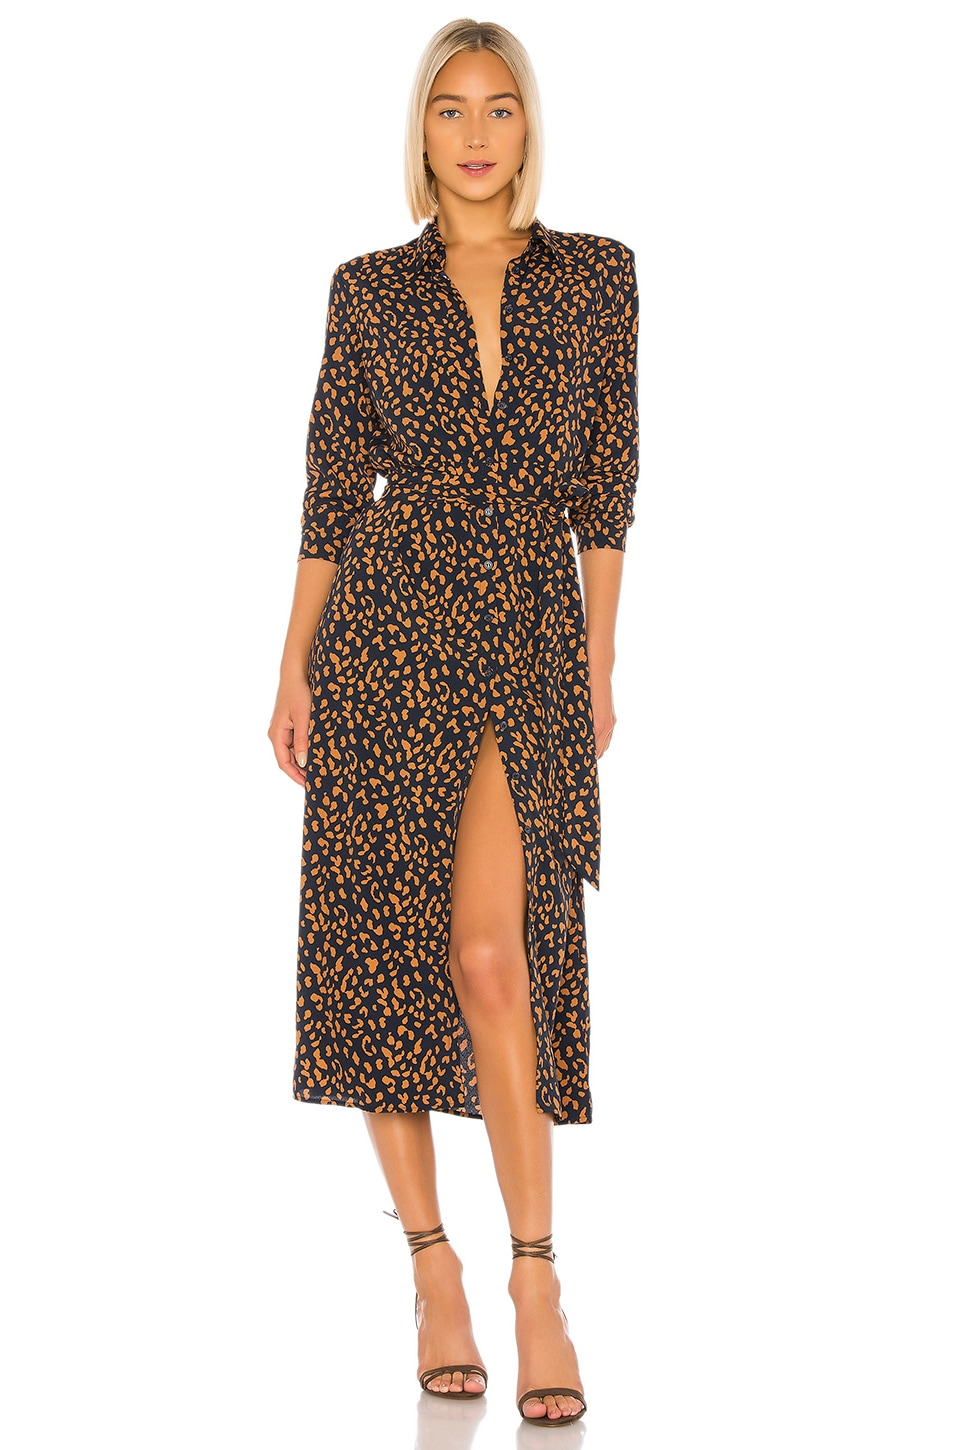 Bardot Leopard Shirt Dress in Navy Leopard